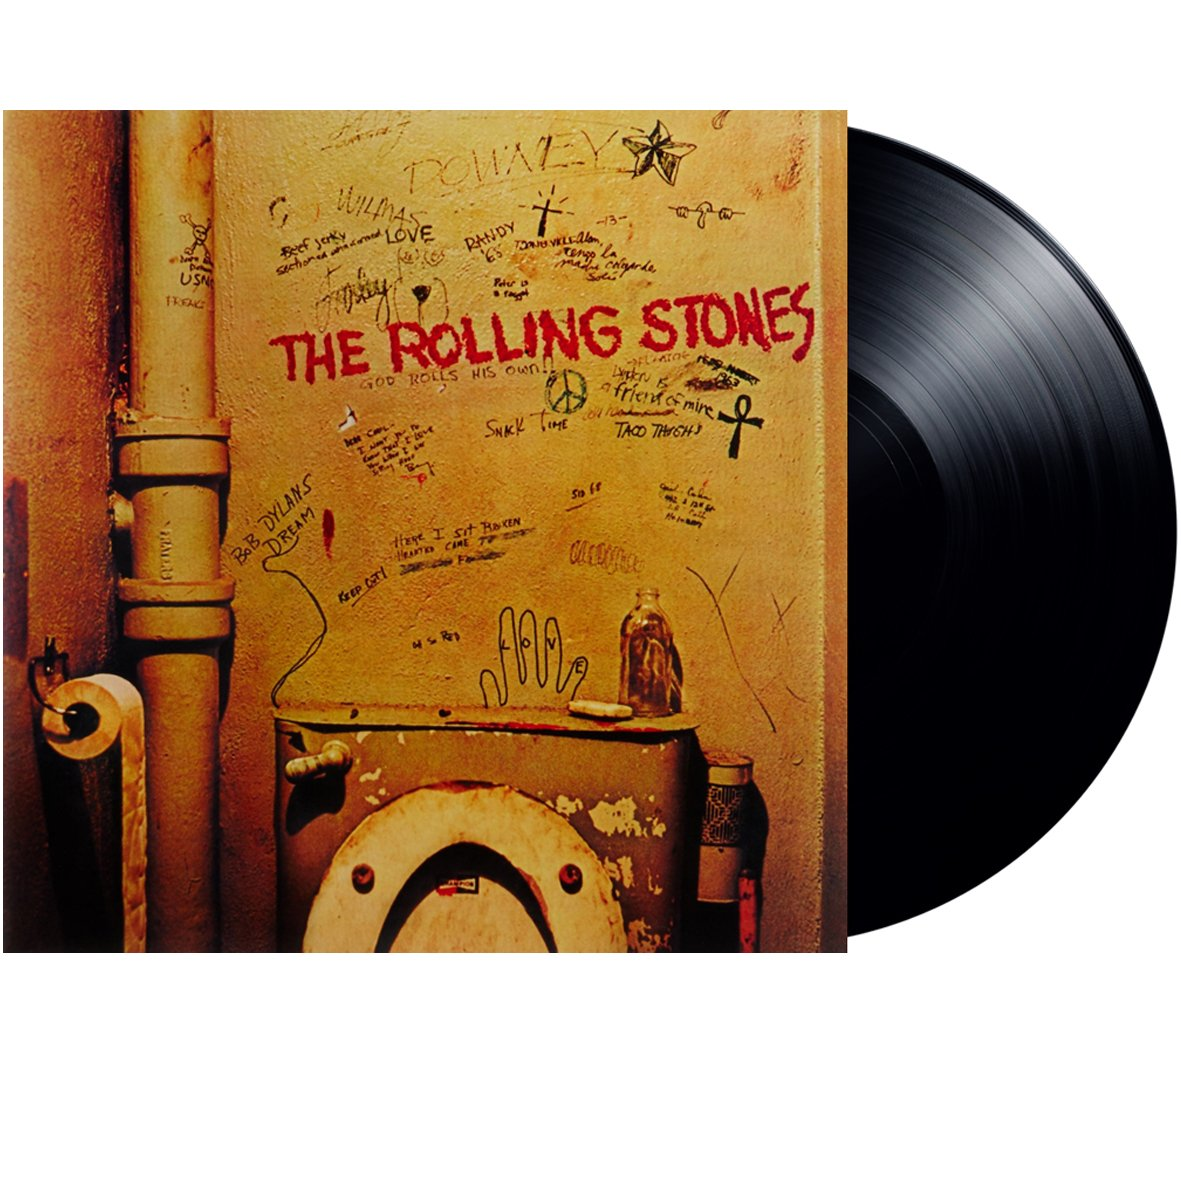 Beggars Banquet [Vinyl] by Abkco